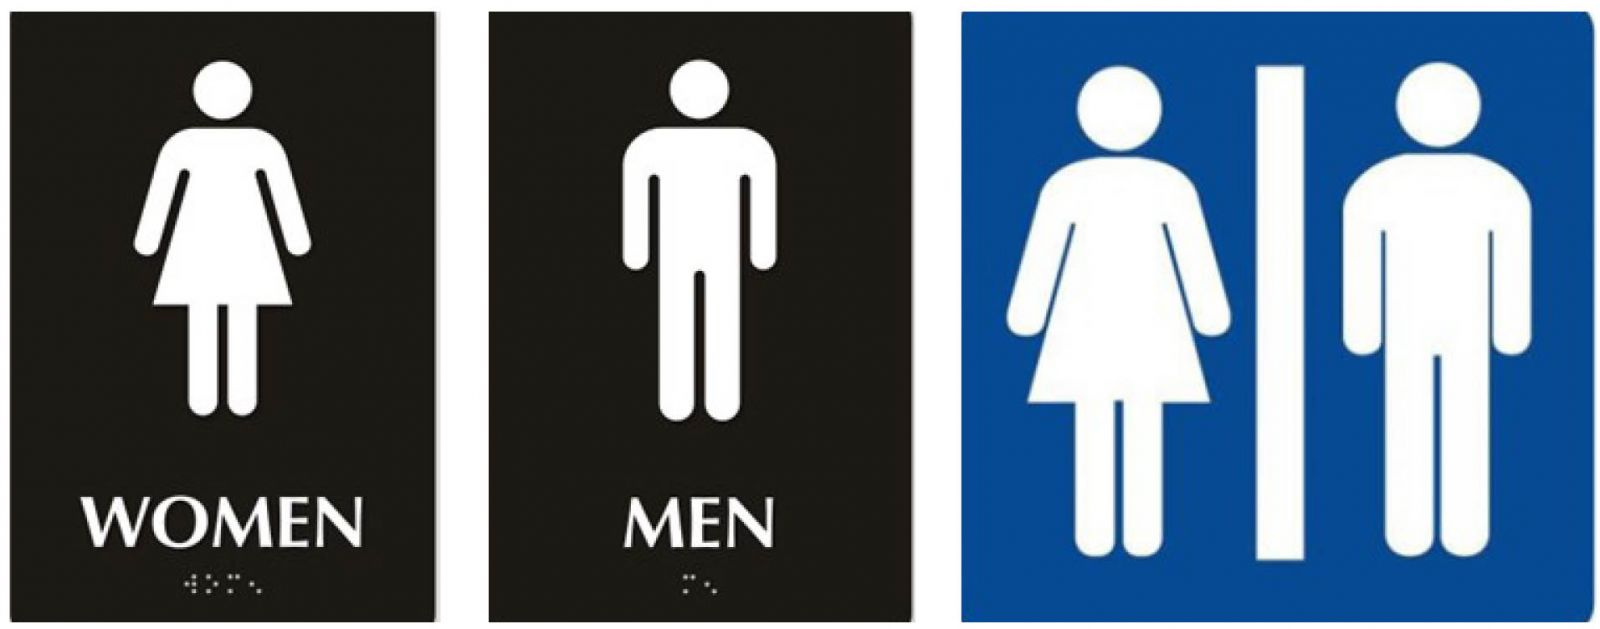 school bathrooms signs. Elicit And Explain That On February 22, 2017, The Trump Administration Repealed Federal Guidelines Protecting Transgender Students In Public Schools. School Bathrooms Signs